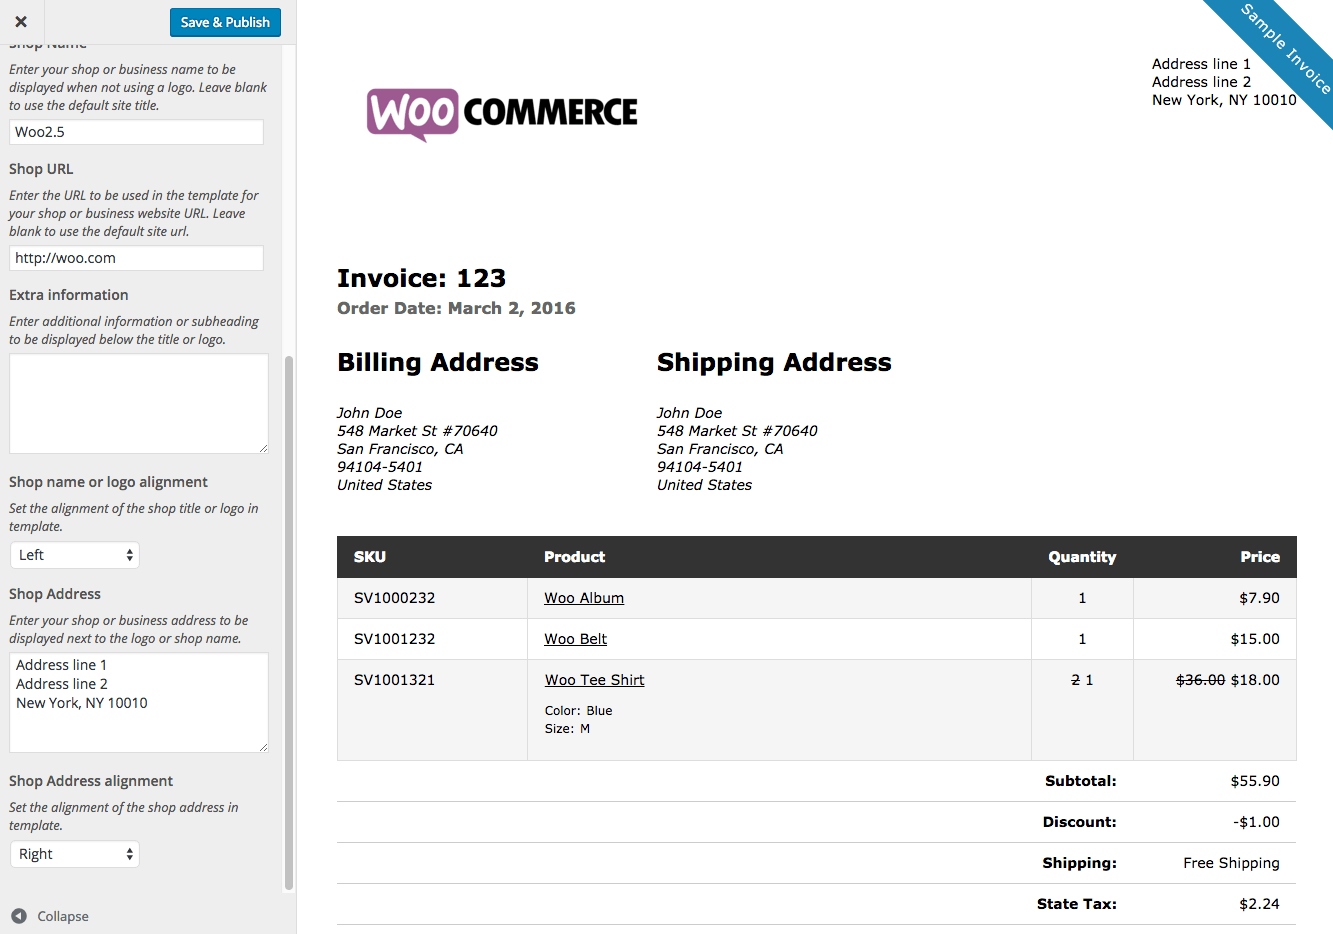 Darkfaderus  Nice Woocommerce Print Invoices Amp Packing Lists  Woocommerce Docs With Heavenly Woocommerce Print Invoices  Packing Lists Customizer With Agreeable Invoice Process Also Mechanic Invoice Template In Addition Paypal Invoice Template And Invoice Tracking Template As Well As What Is An Invoice Price Additionally Paychex Eib Invoice From Docswoocommercecom With Darkfaderus  Heavenly Woocommerce Print Invoices Amp Packing Lists  Woocommerce Docs With Agreeable Woocommerce Print Invoices  Packing Lists Customizer And Nice Invoice Process Also Mechanic Invoice Template In Addition Paypal Invoice Template From Docswoocommercecom